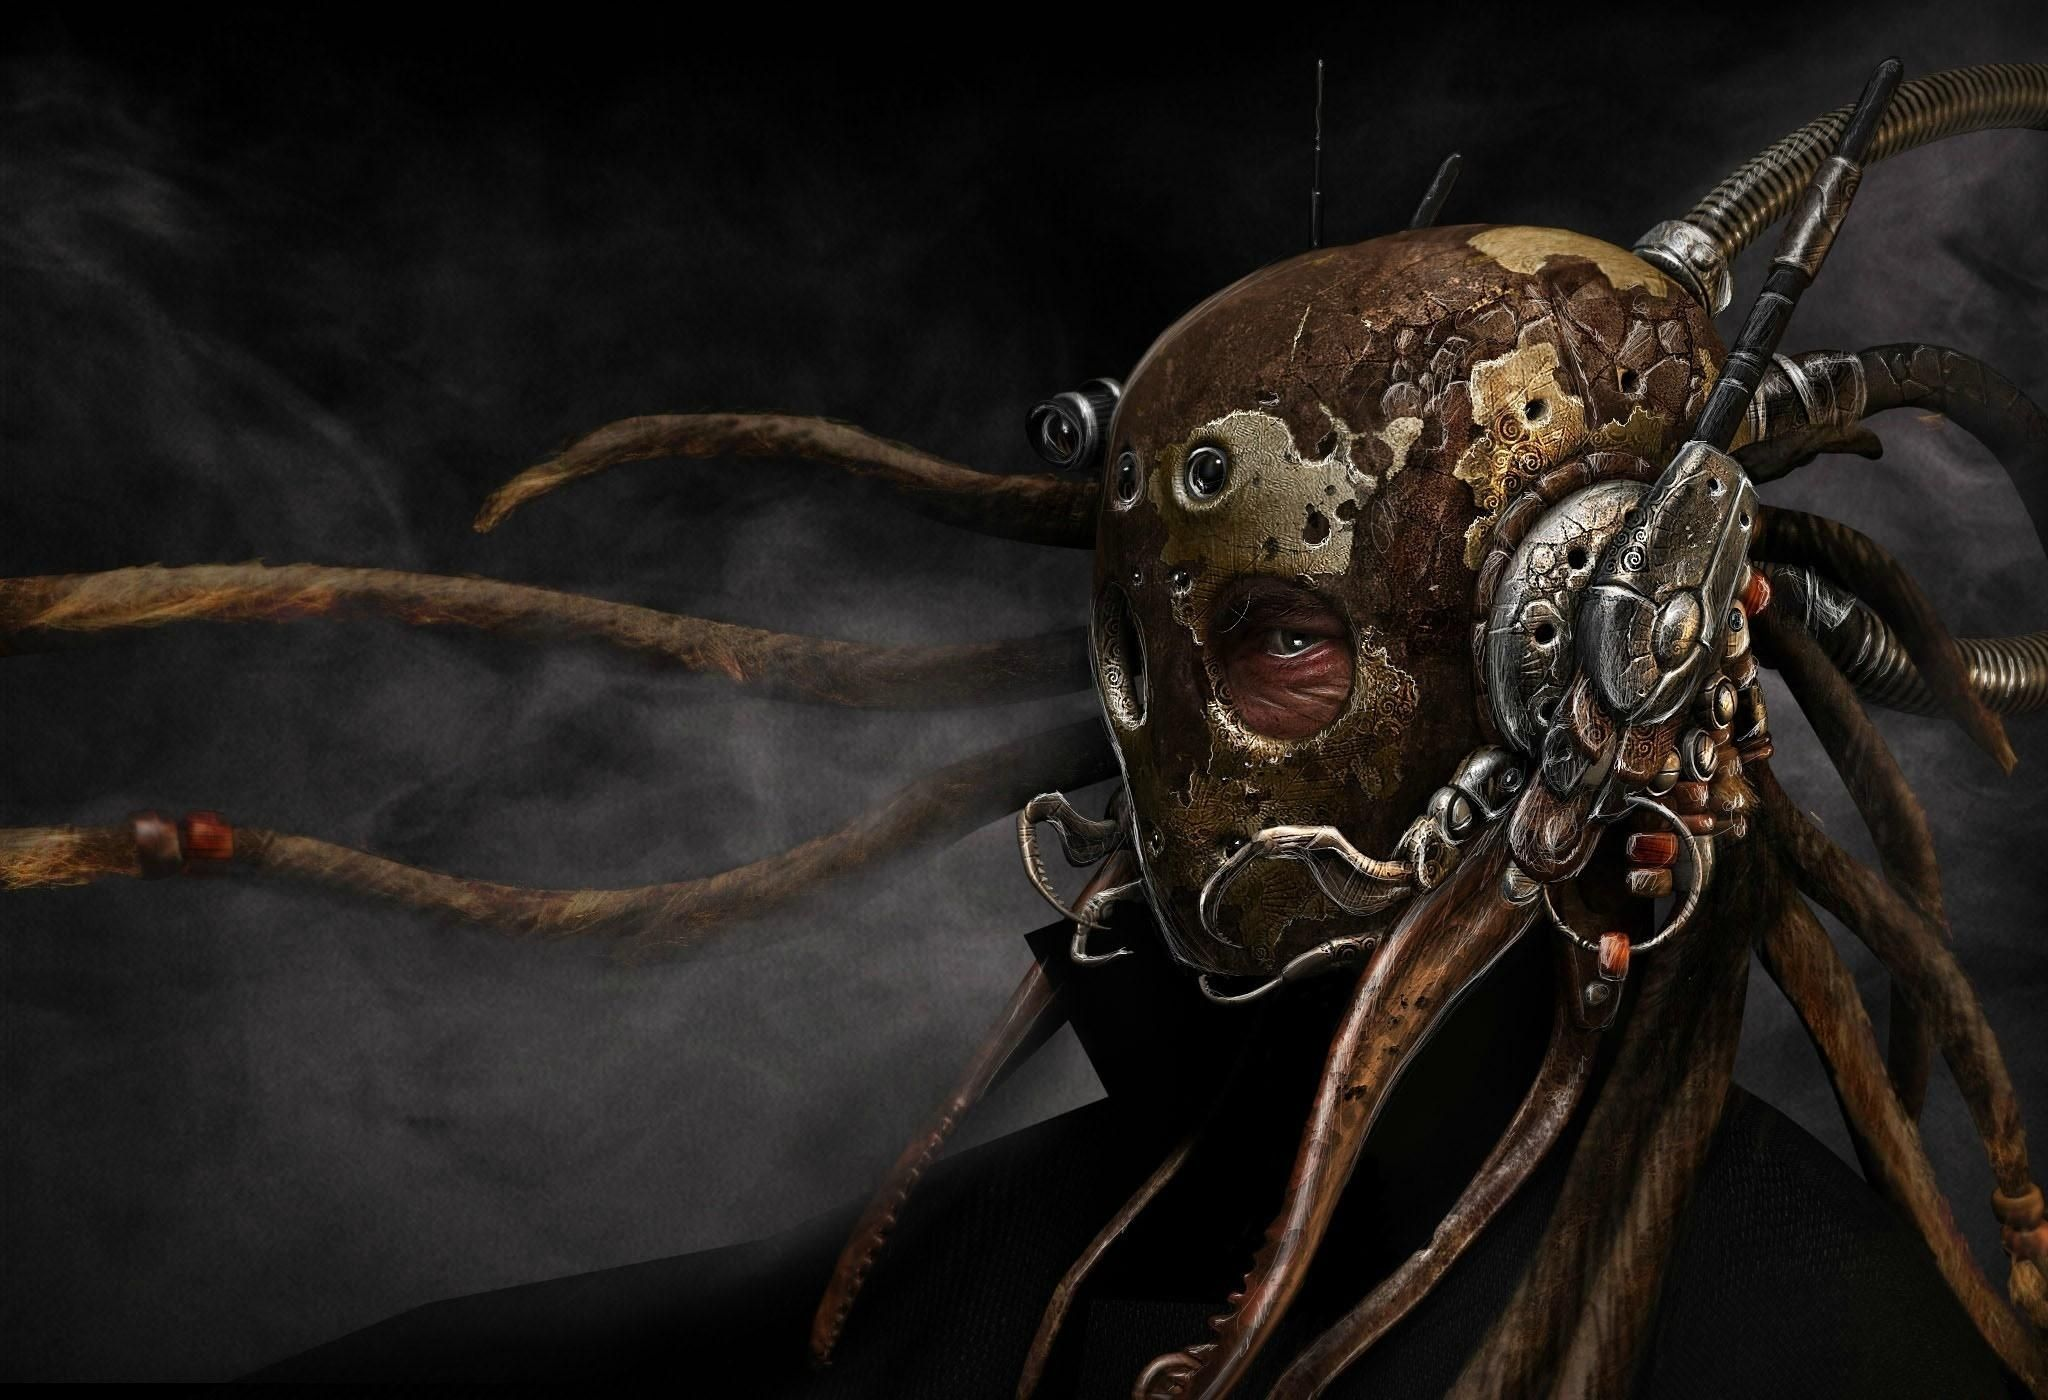 Cyborg-Head-Octopus-Machine.jpg